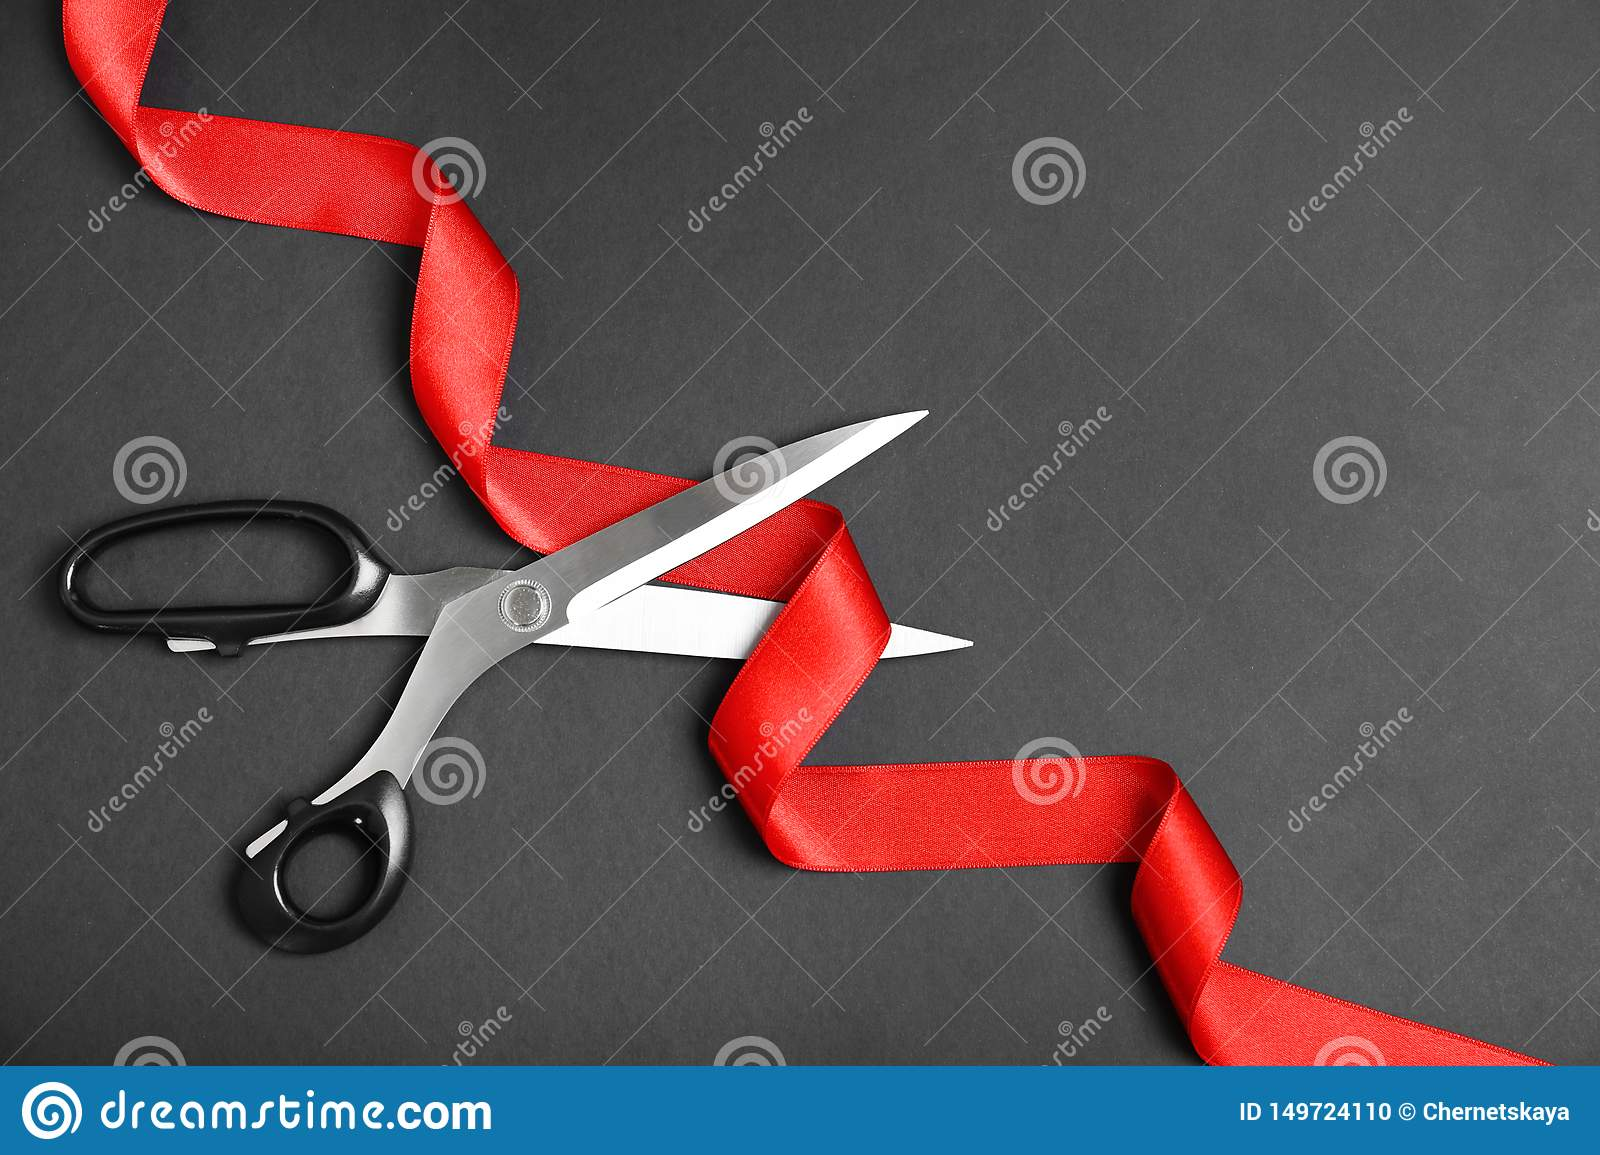 Stylish scissors and red ribbon on black background, flat lay. Ceremonial tape cutting